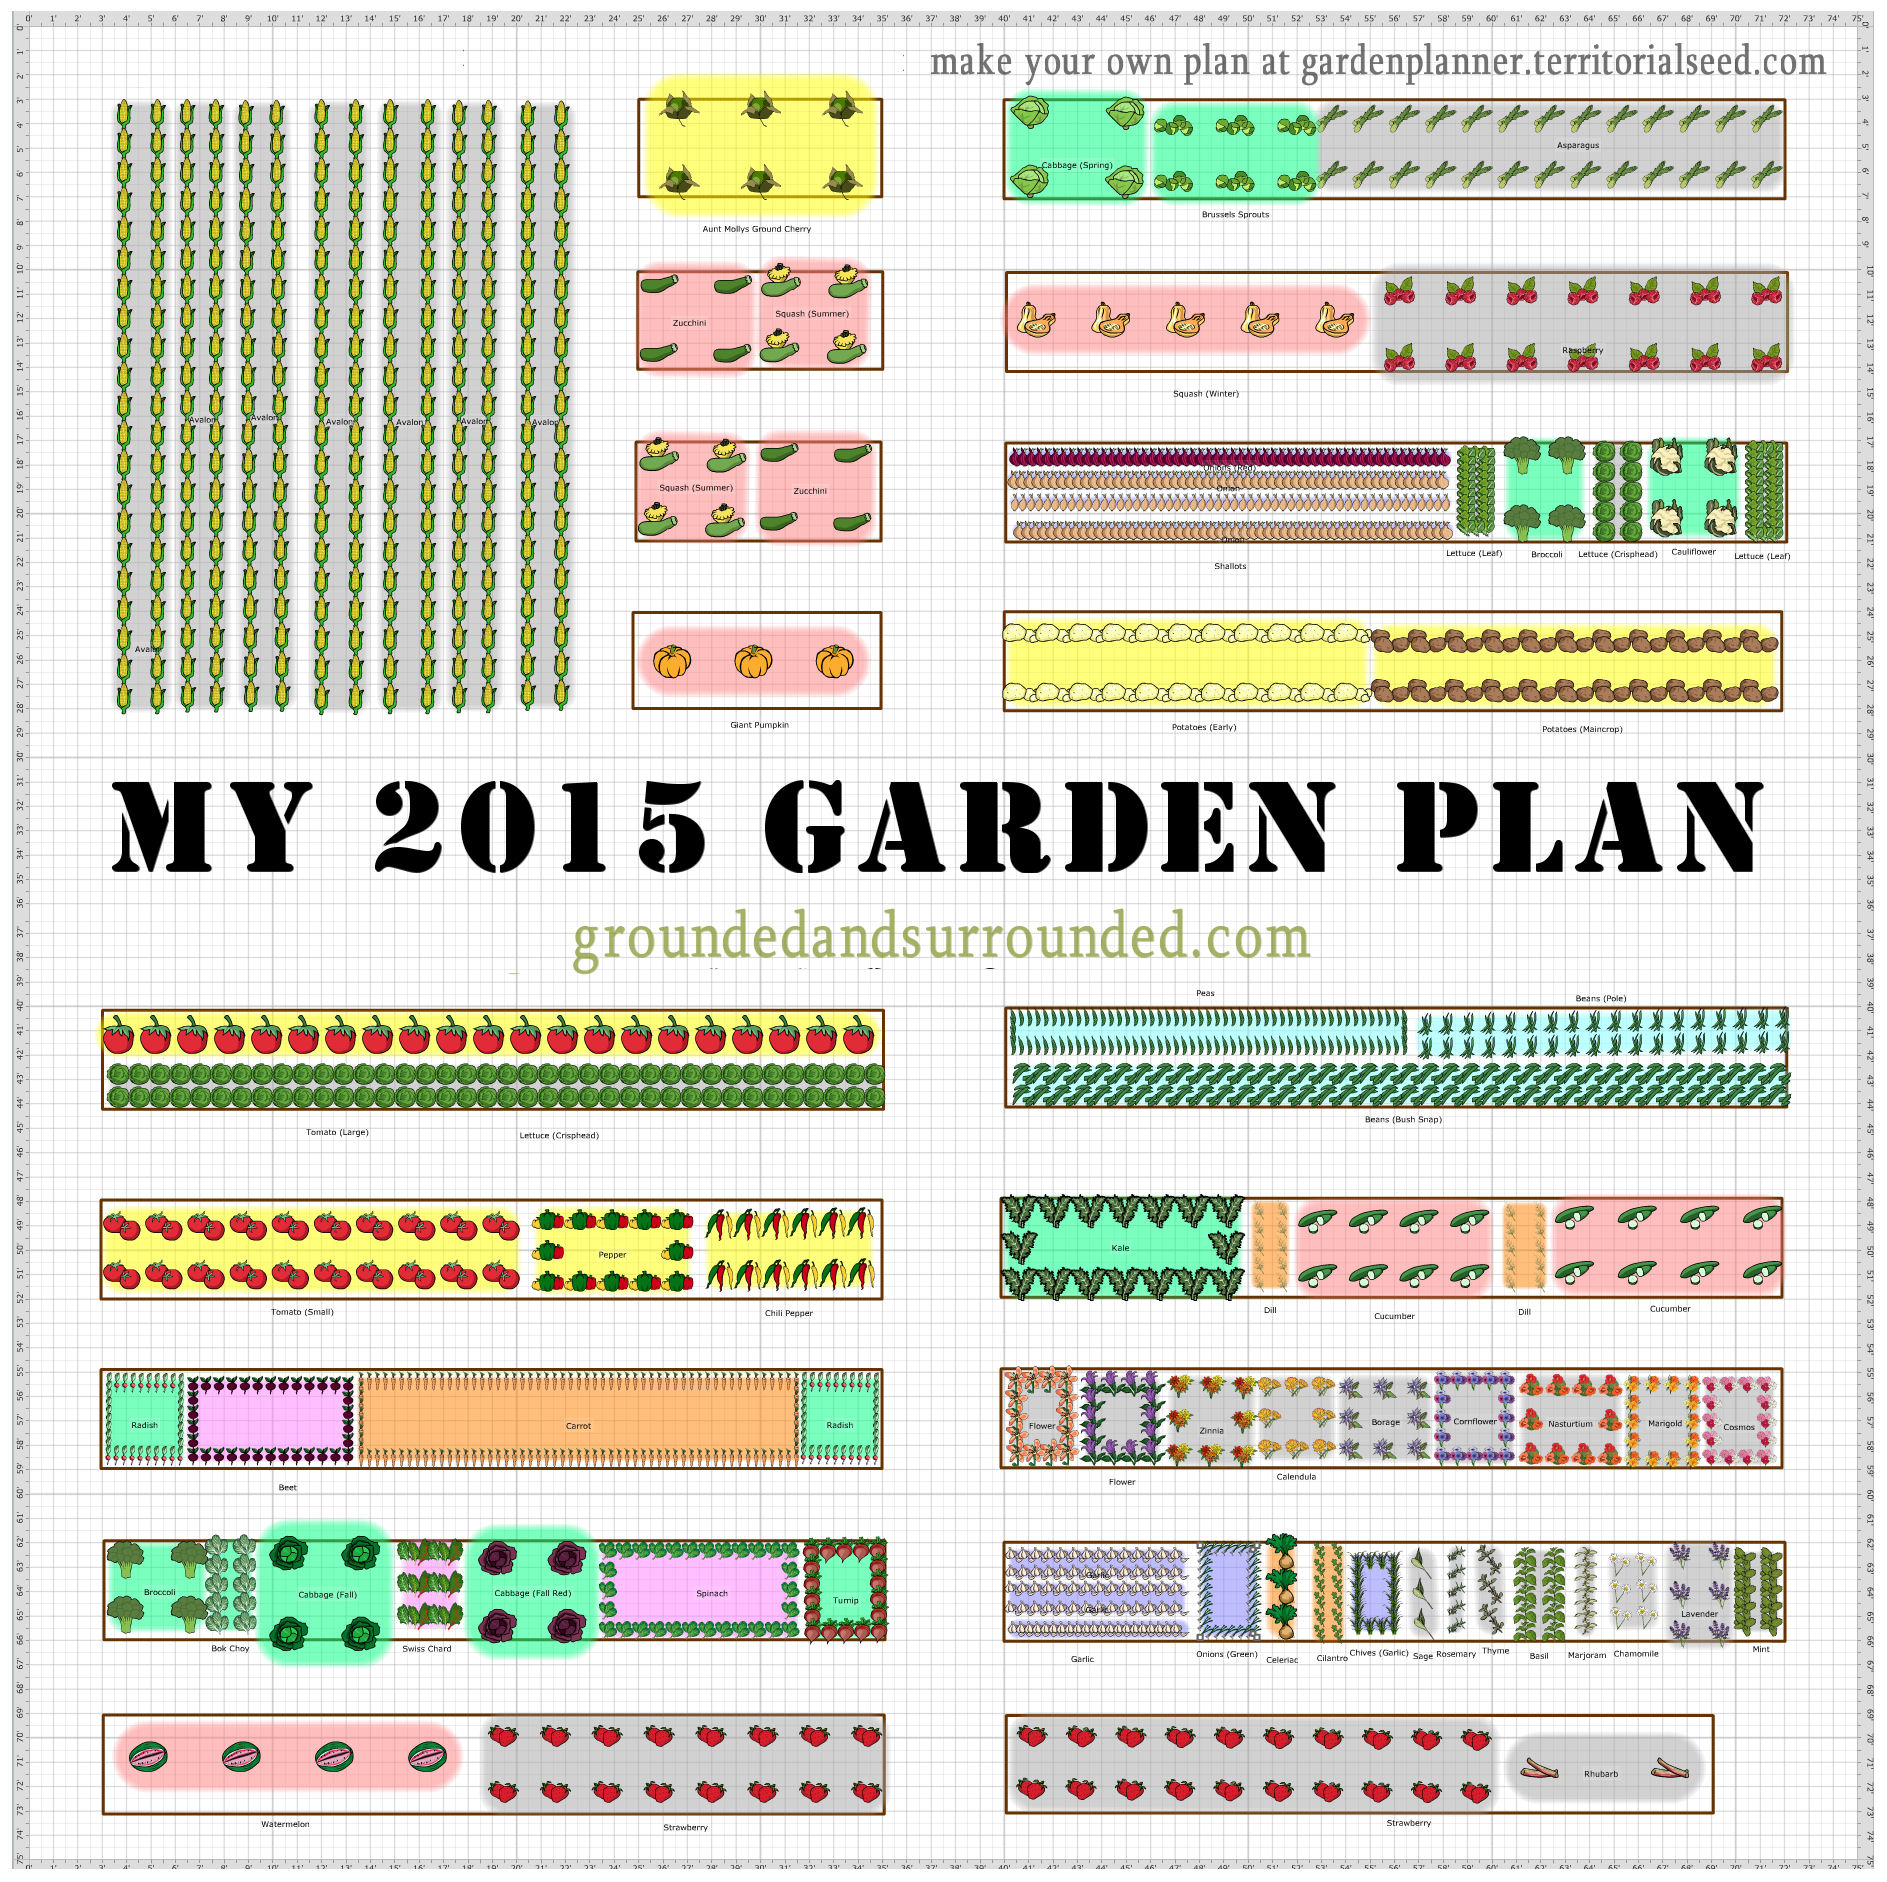 I Have Often Wished That More Gardeners Shared Their Large Vegetable Garden  Plans Online. This. U003eu003e